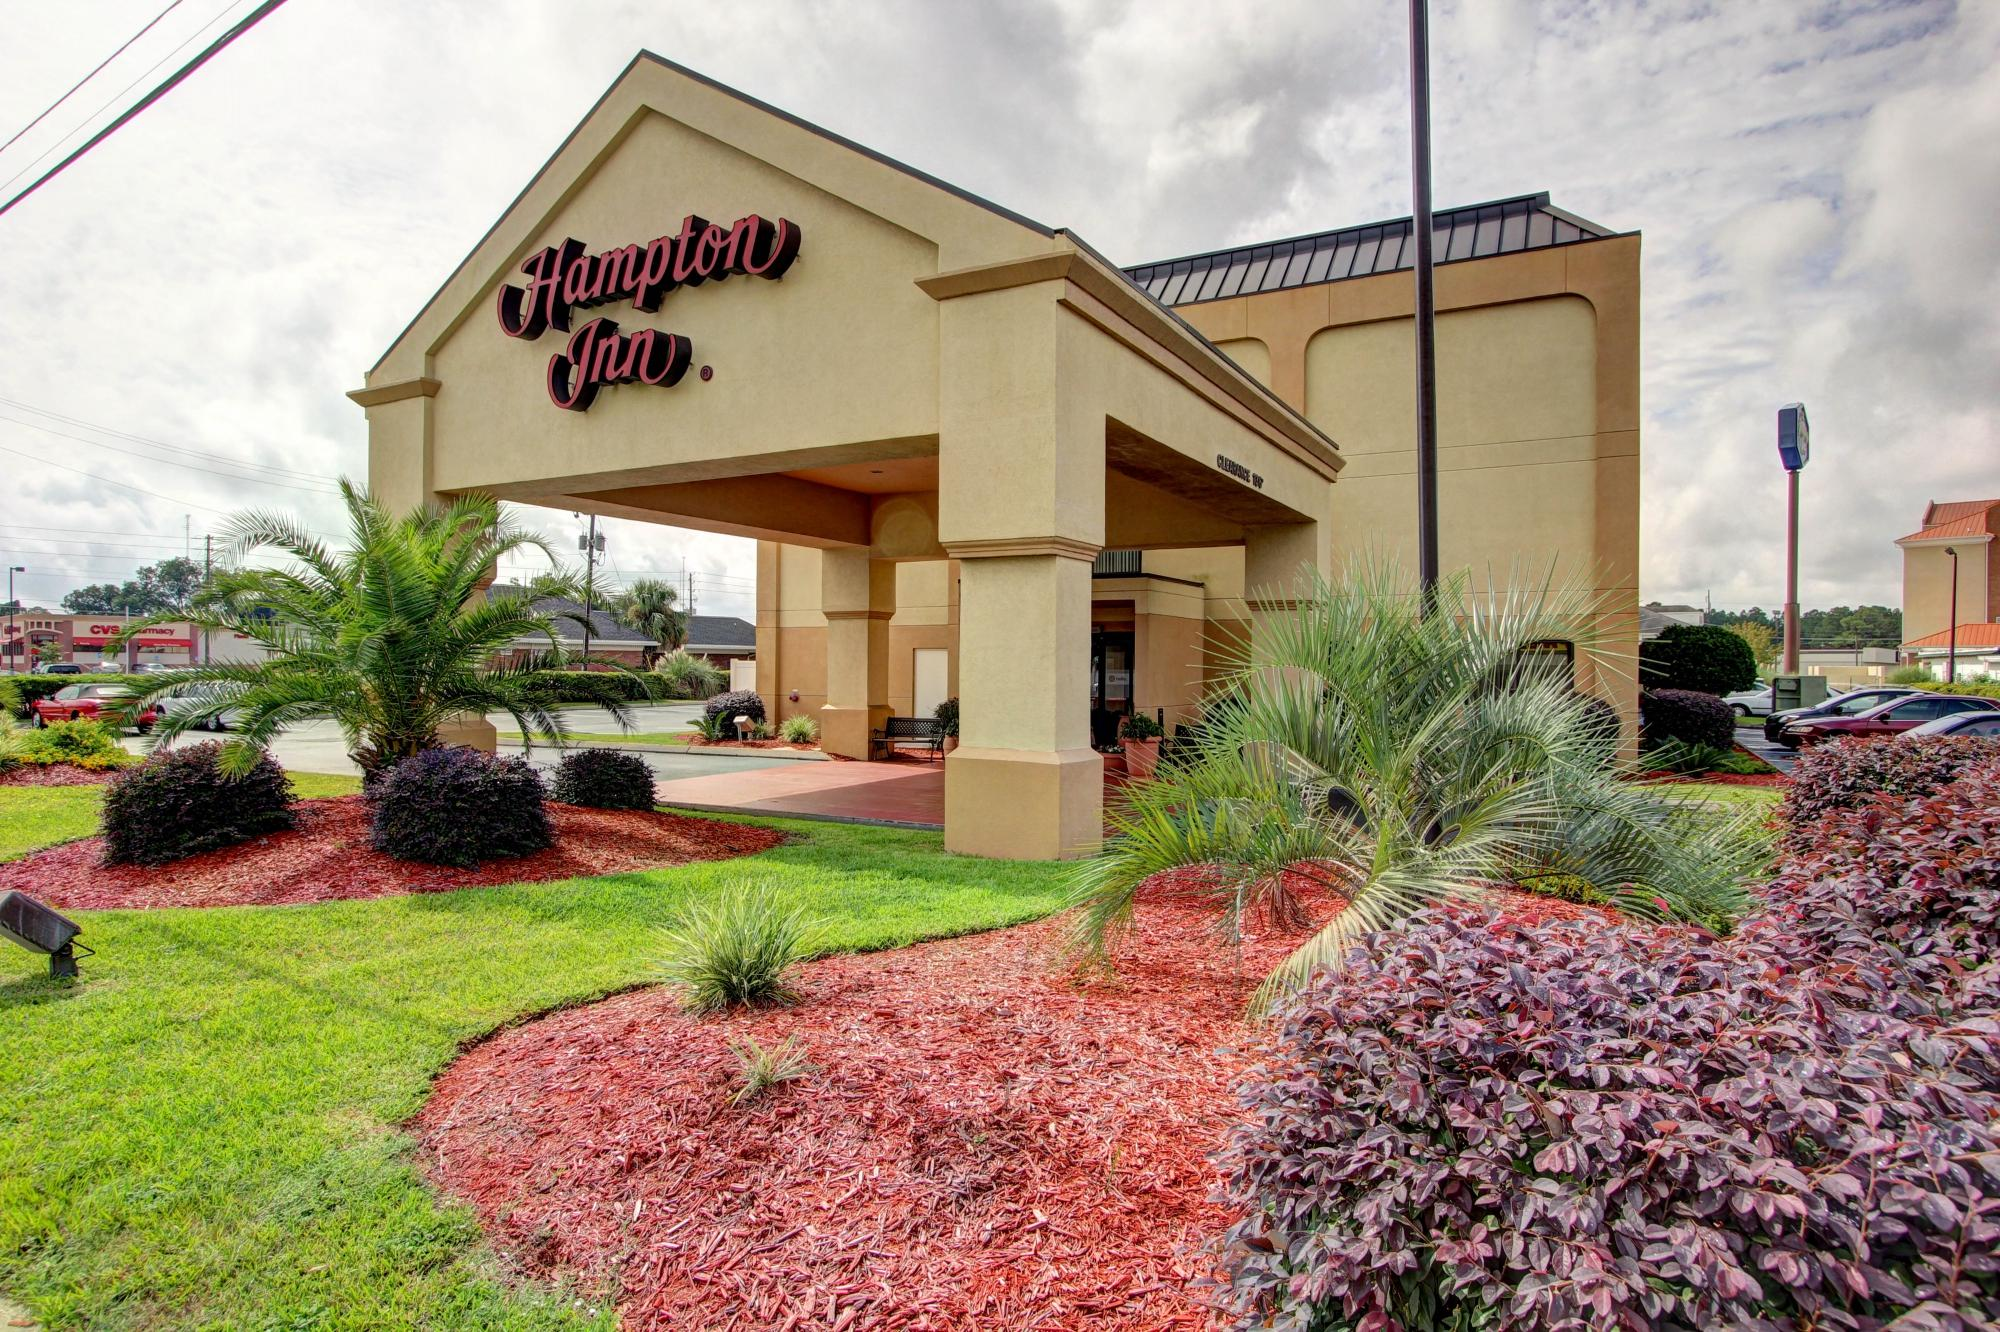 Hampton Inn - Waycross